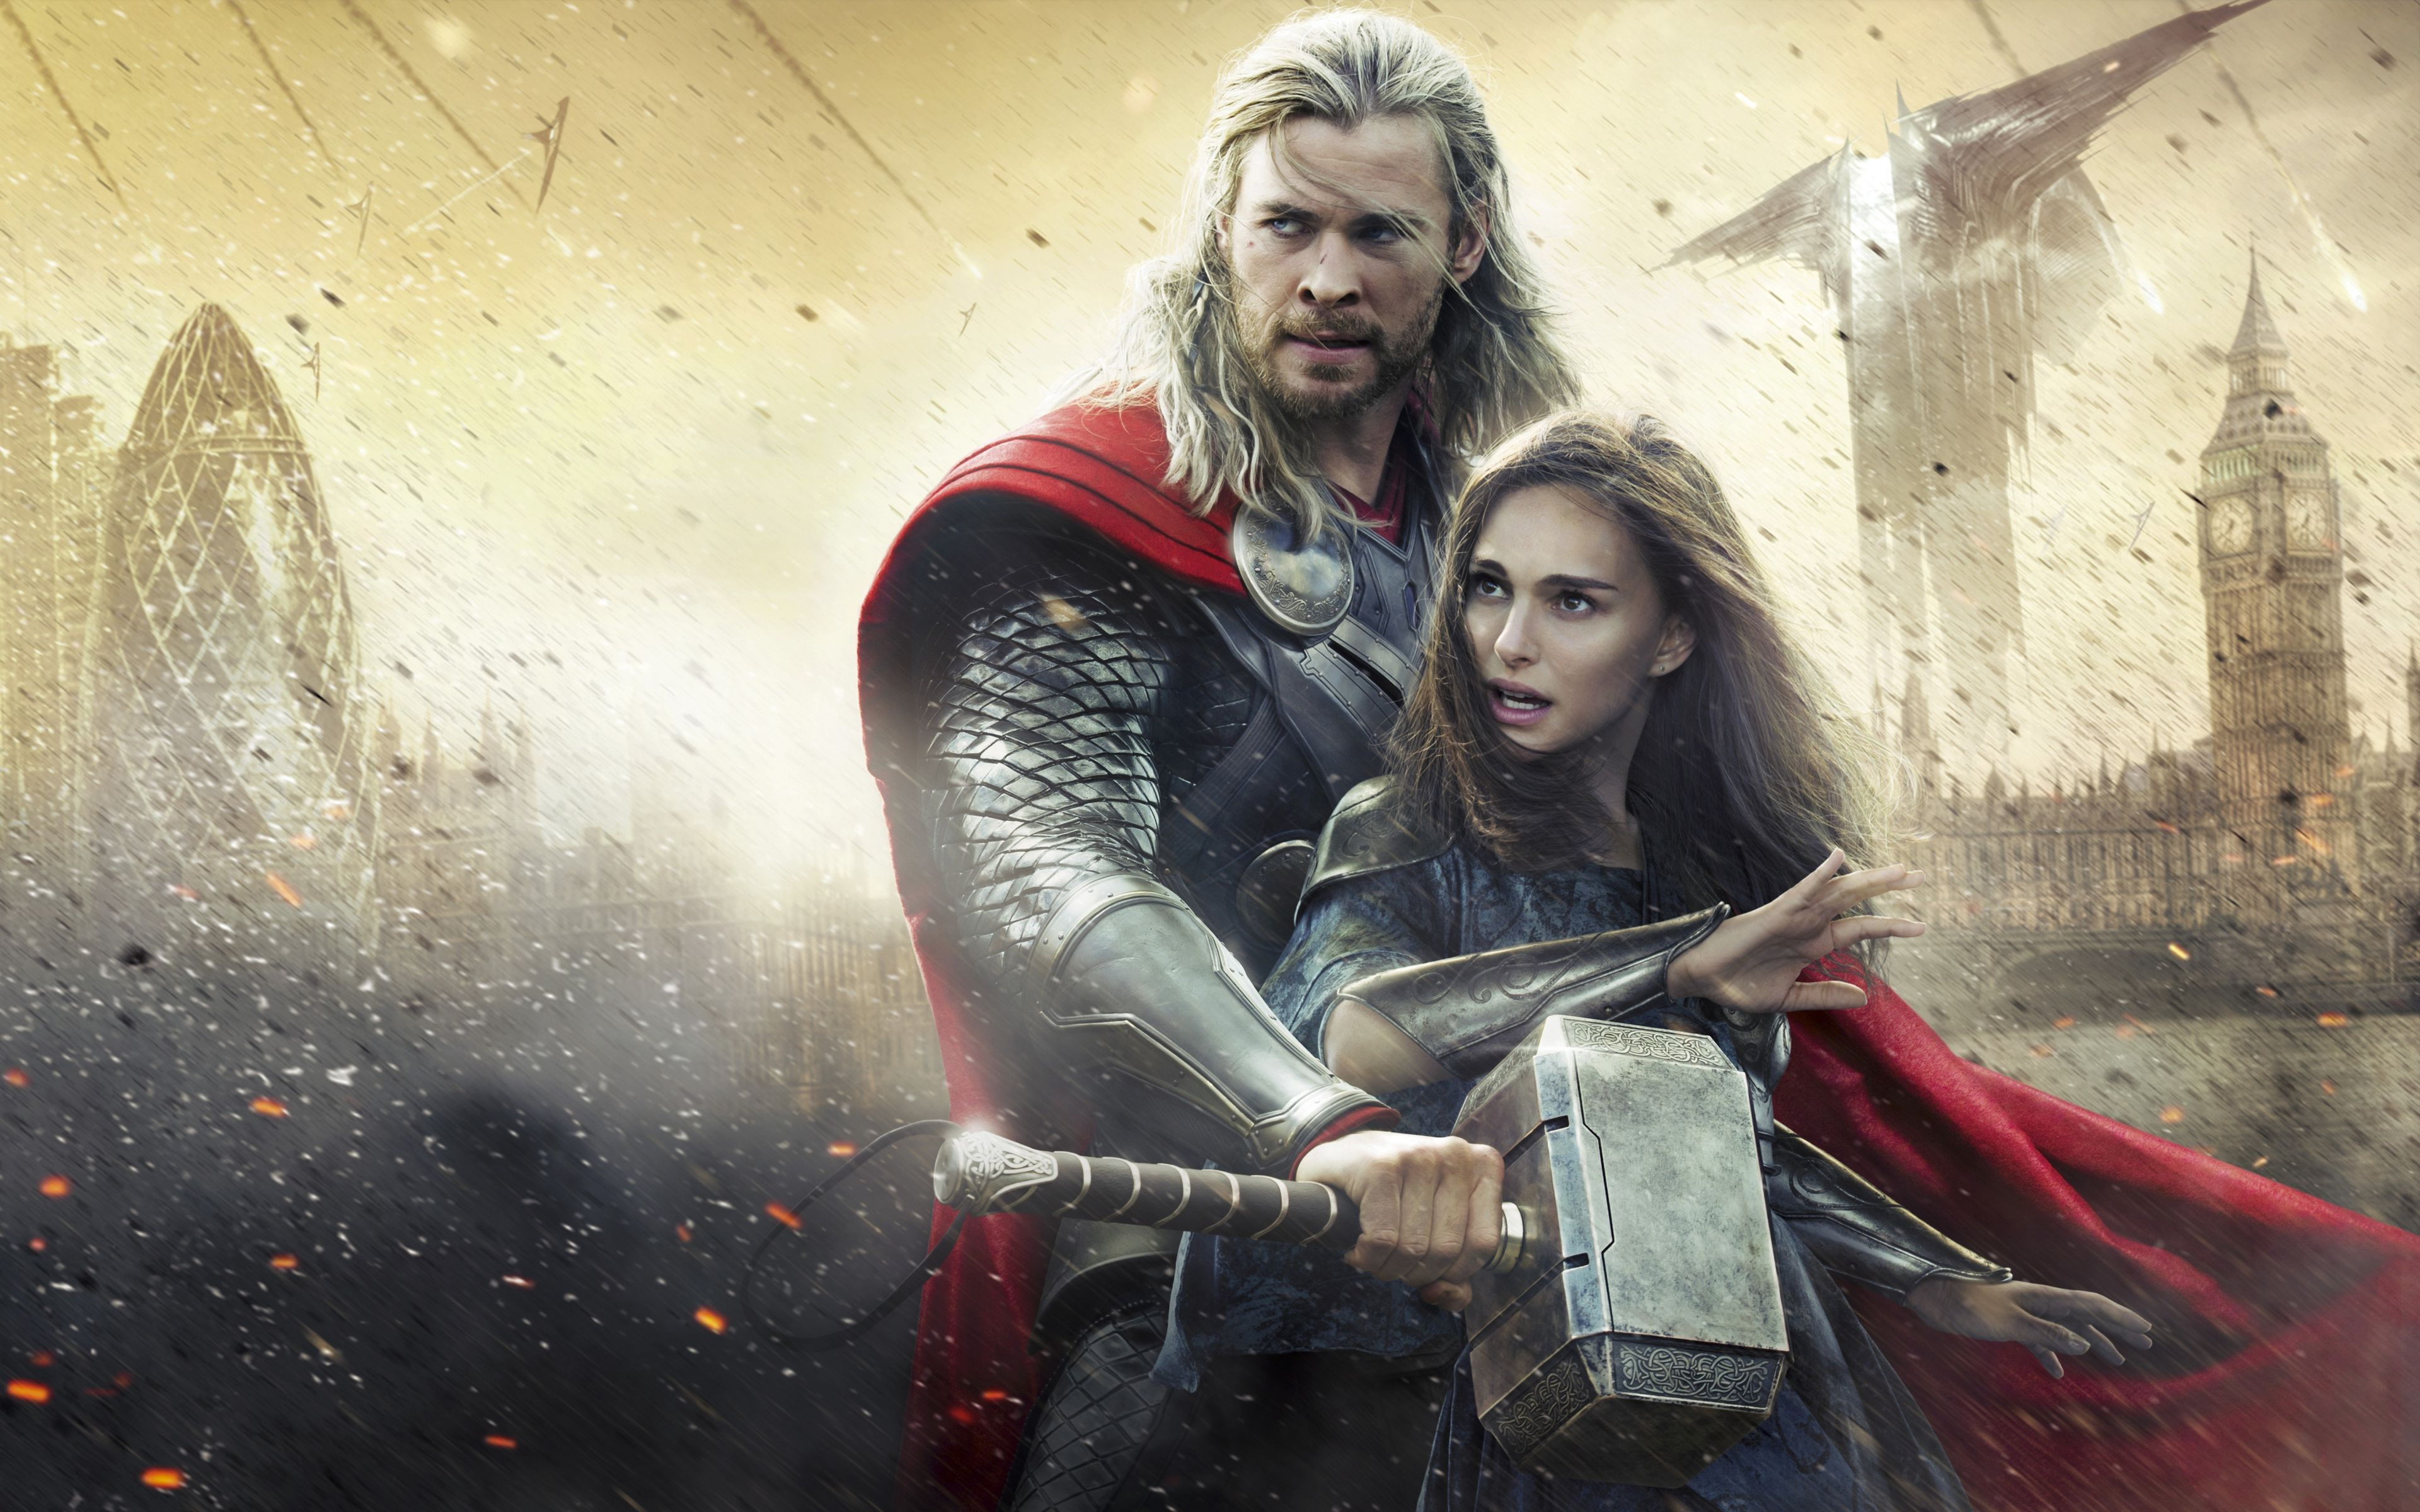 3840x2400 Wallpaper Thor The Dark World Chris Hemsworth Thor Natalie Portman Jane Foster The Dark World Adventure Movies World Movies